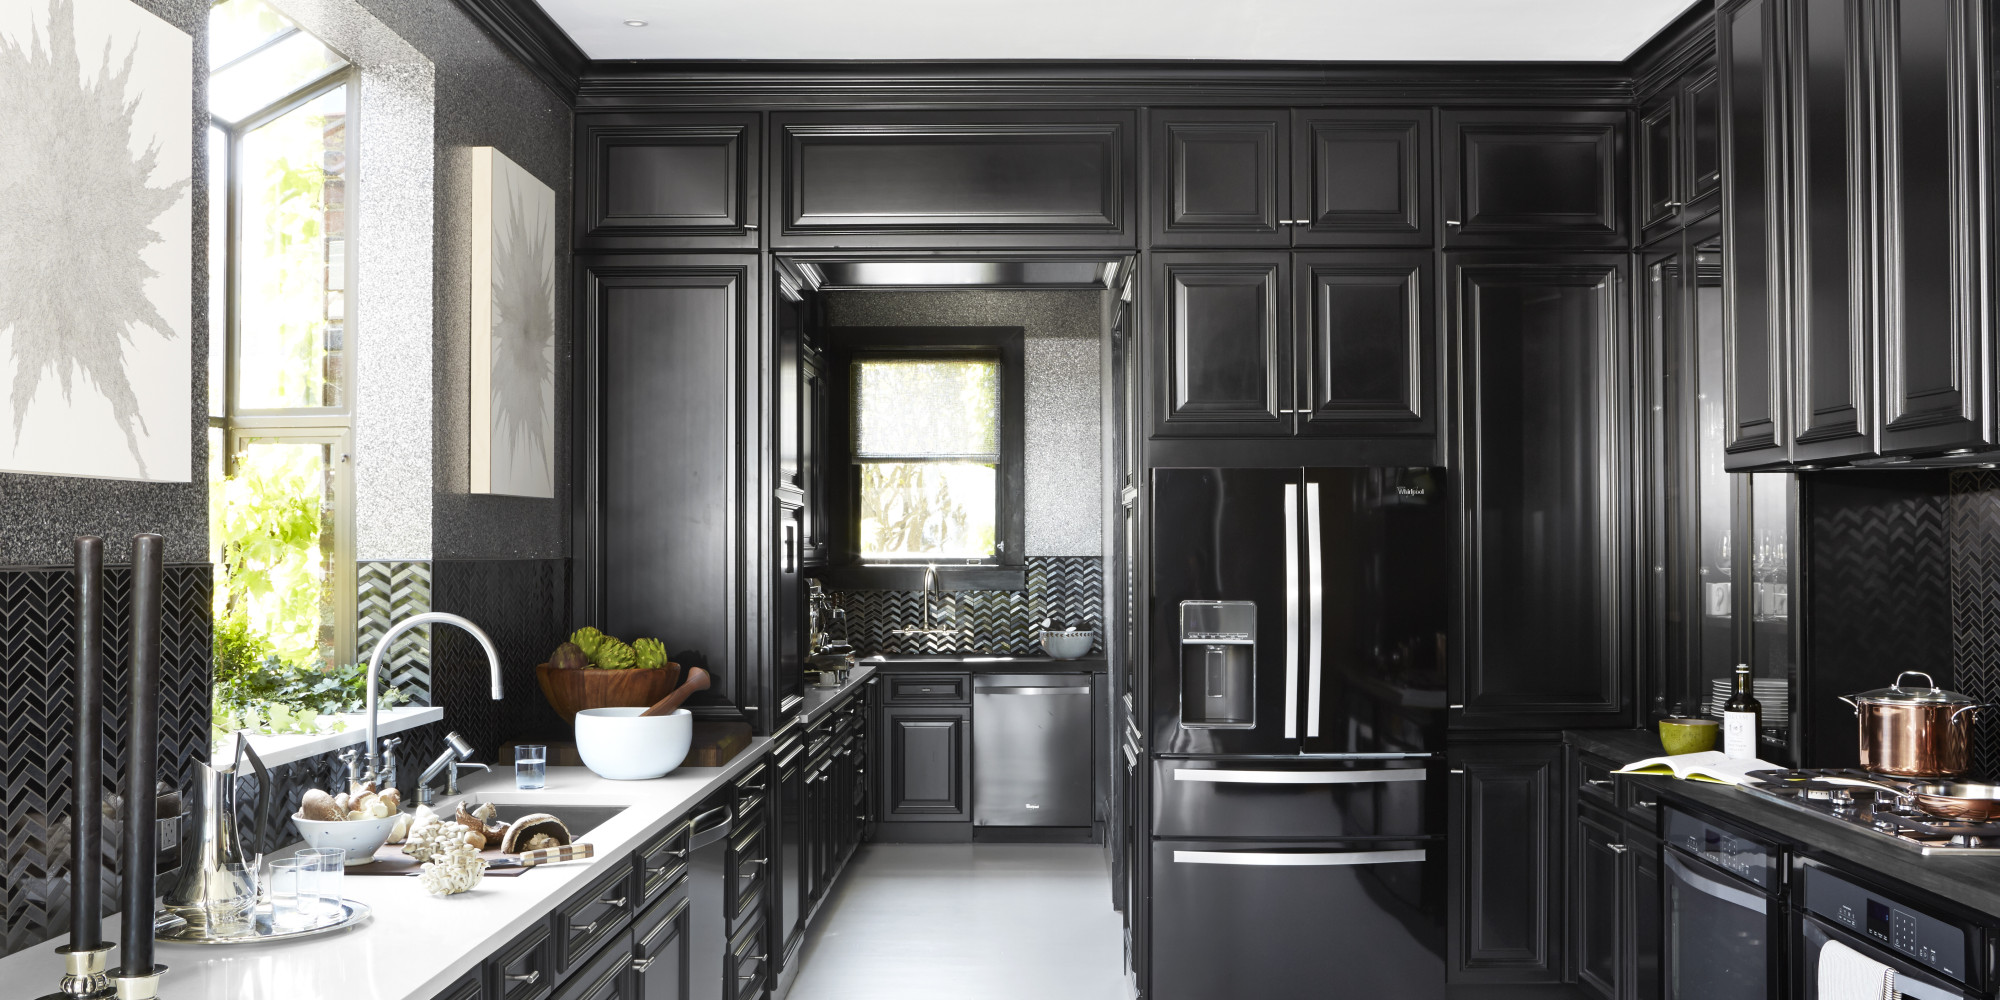 The 2014 Kitchen Of The Year Perfectly Nails This Year's